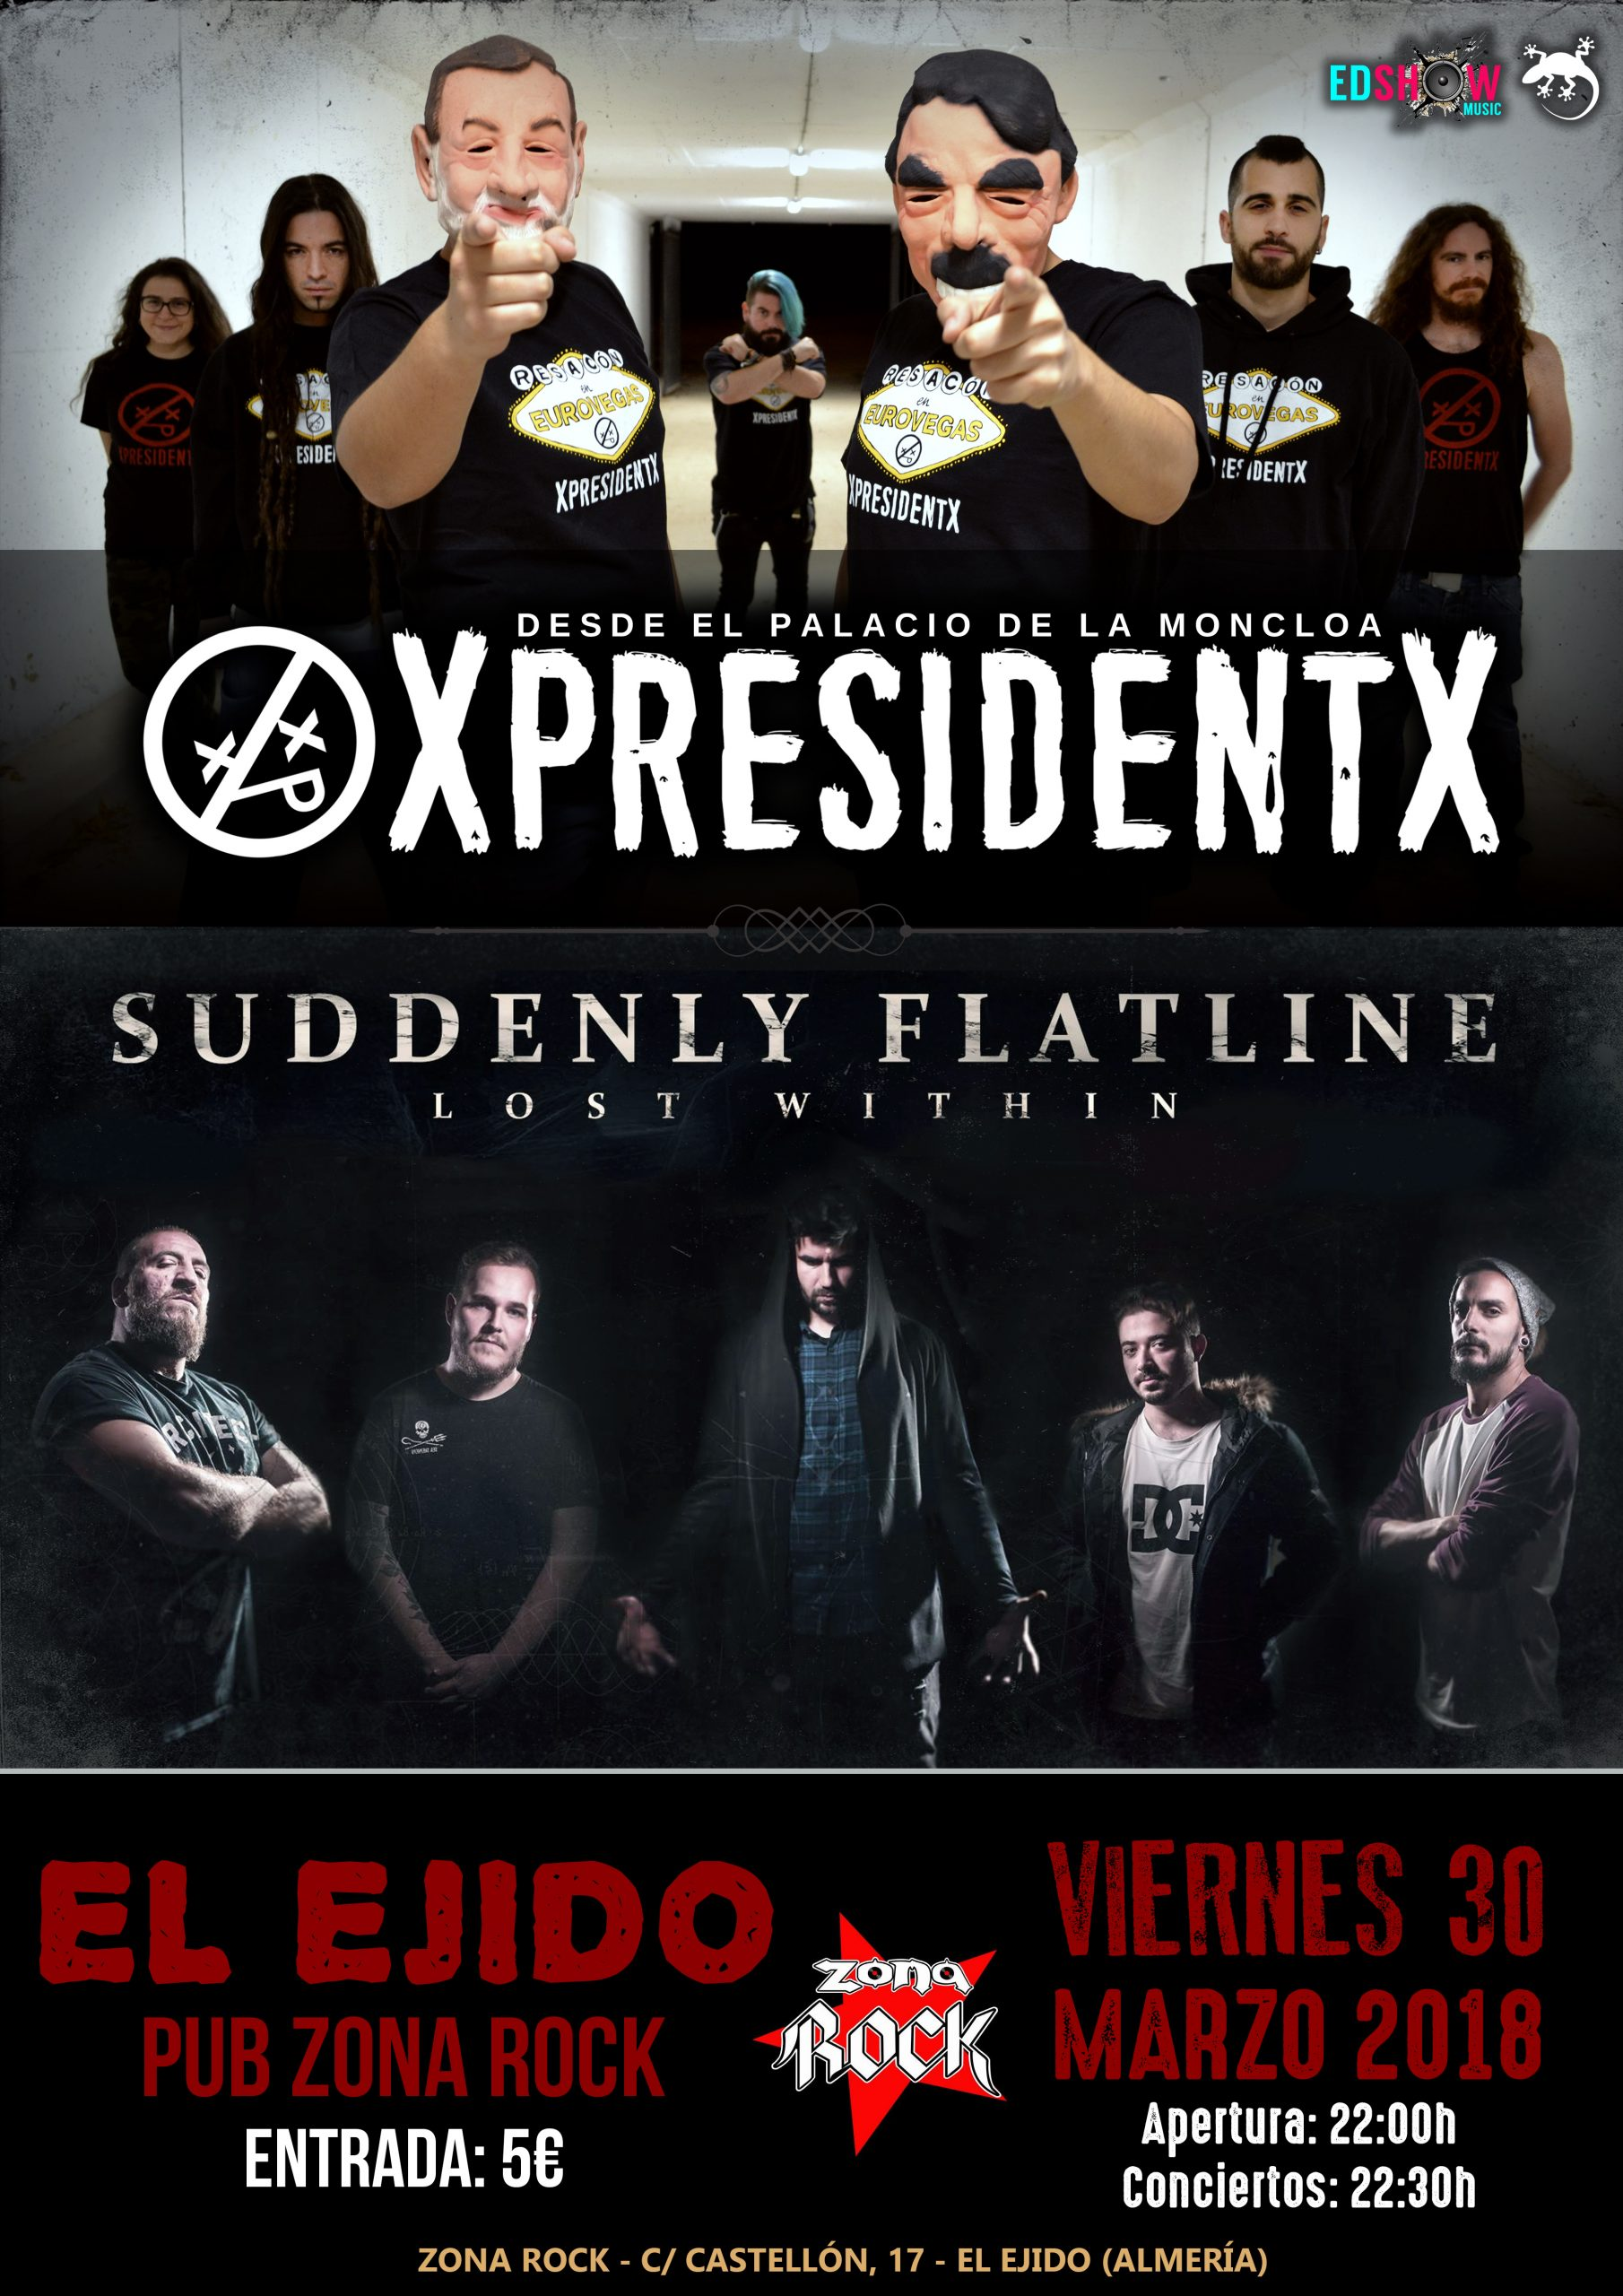 XpresidentX El Ejido Rap Metal Punk Hardcore